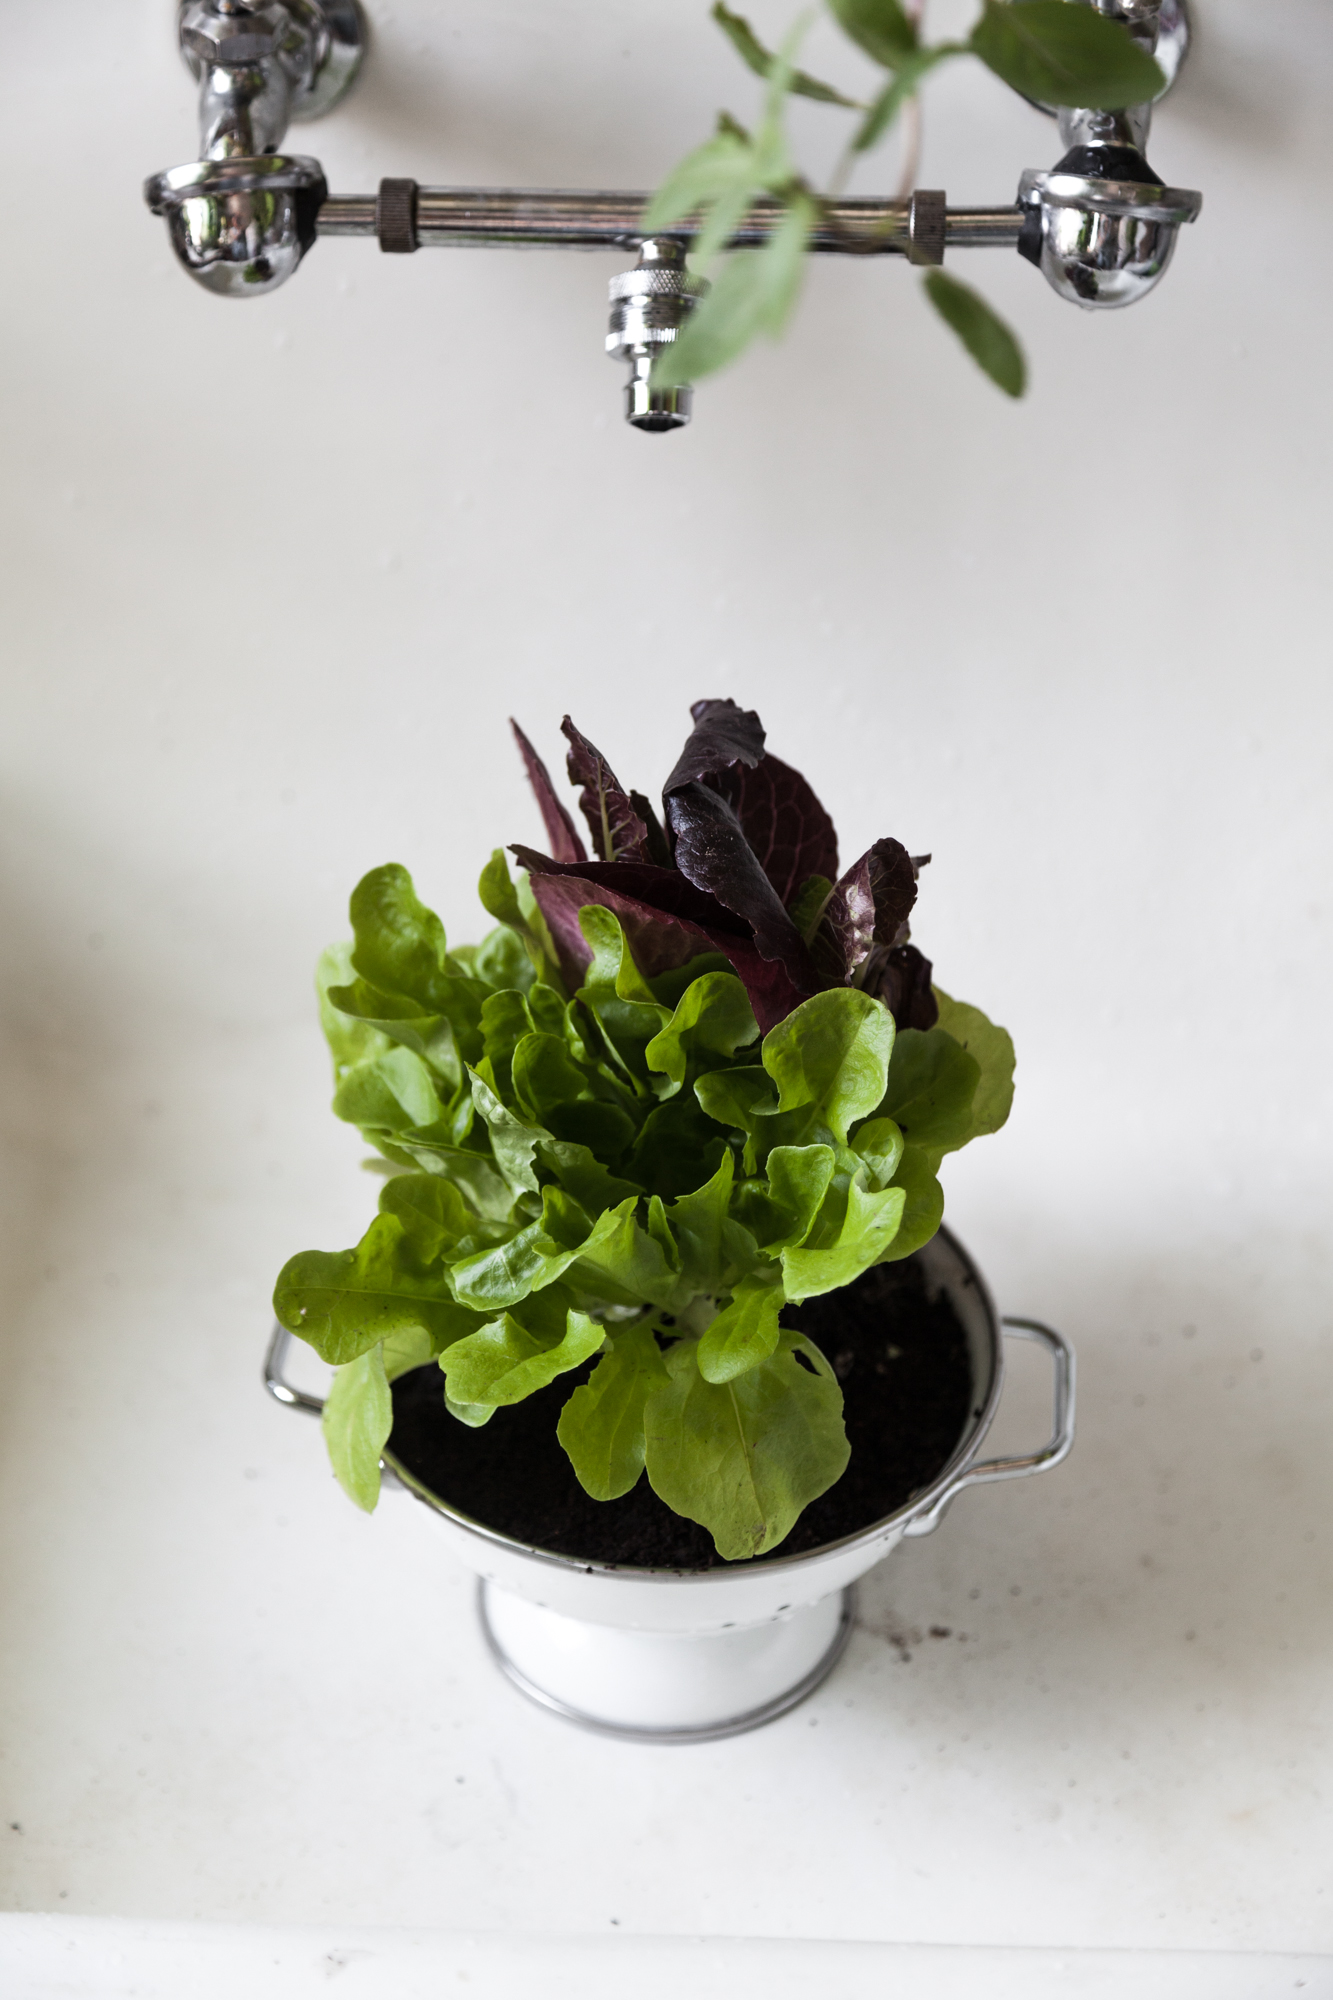 You never have to worry about wet roots in a colander planter, since it has natural drainage. Just pop the colander right in your sink and give it a good drenching. It both washes your salad green leaves and waters the plant.